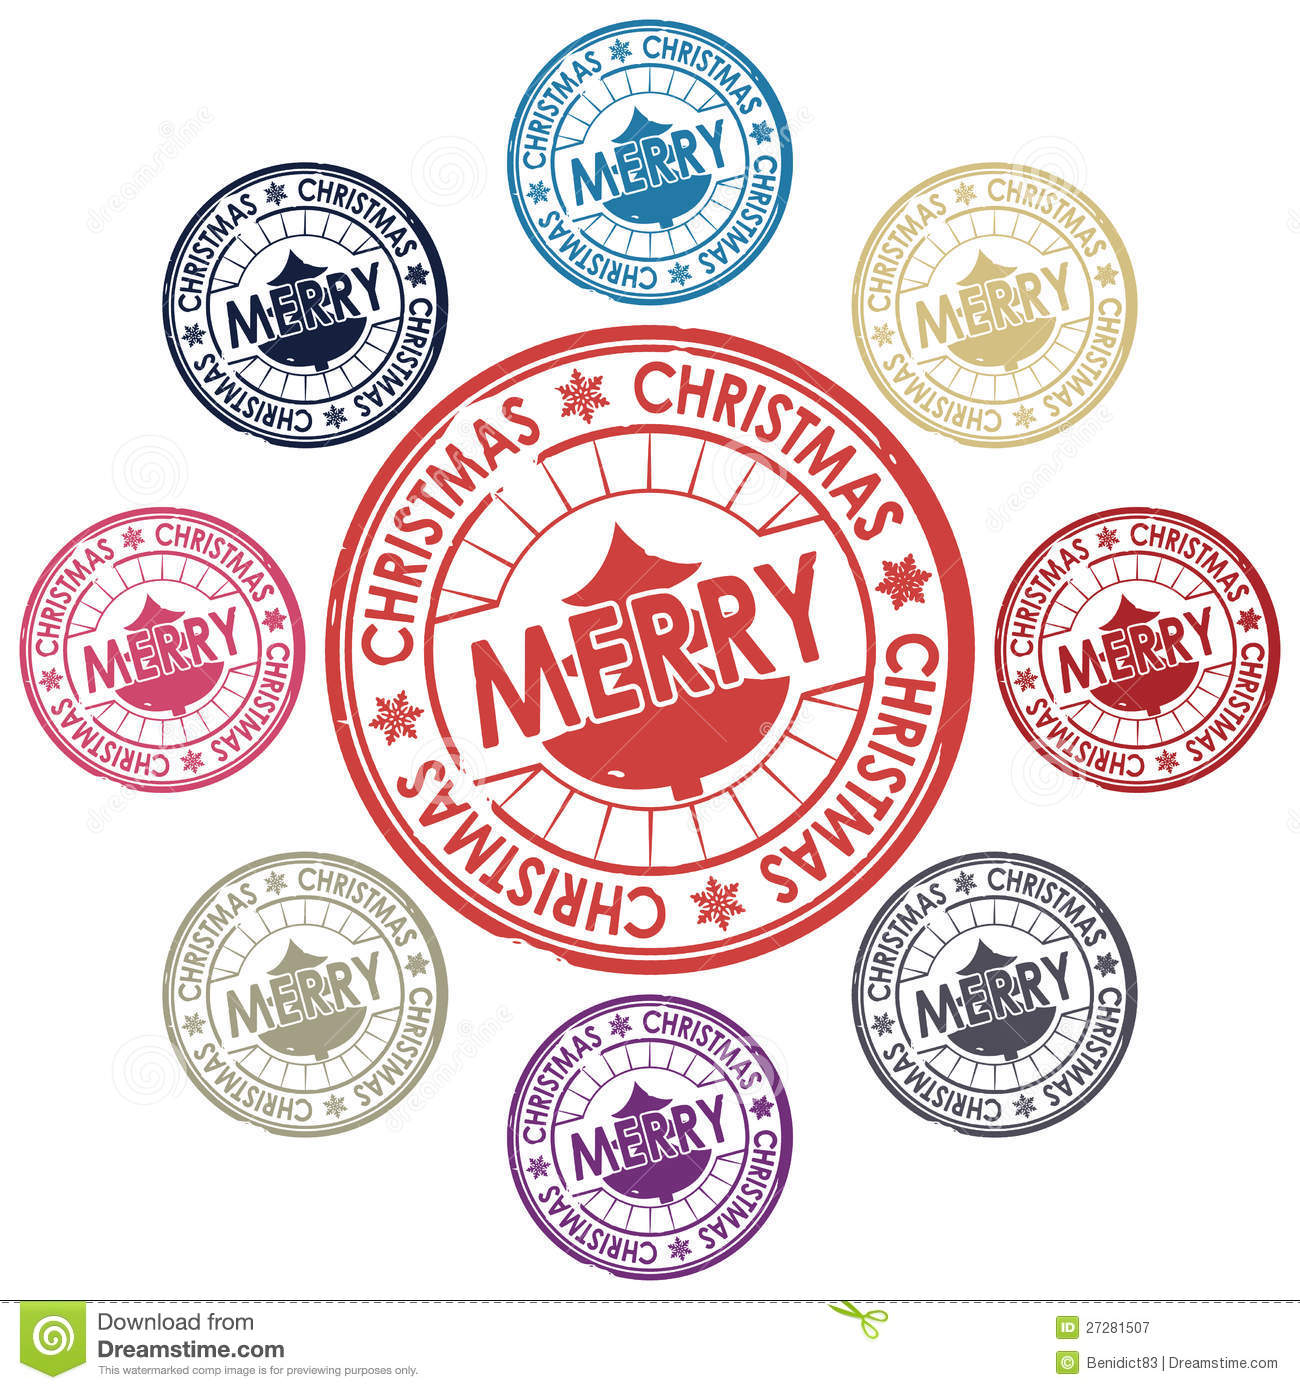 Merry Christmas Stamp Royalty Free Stock Photography - Image: 27281507